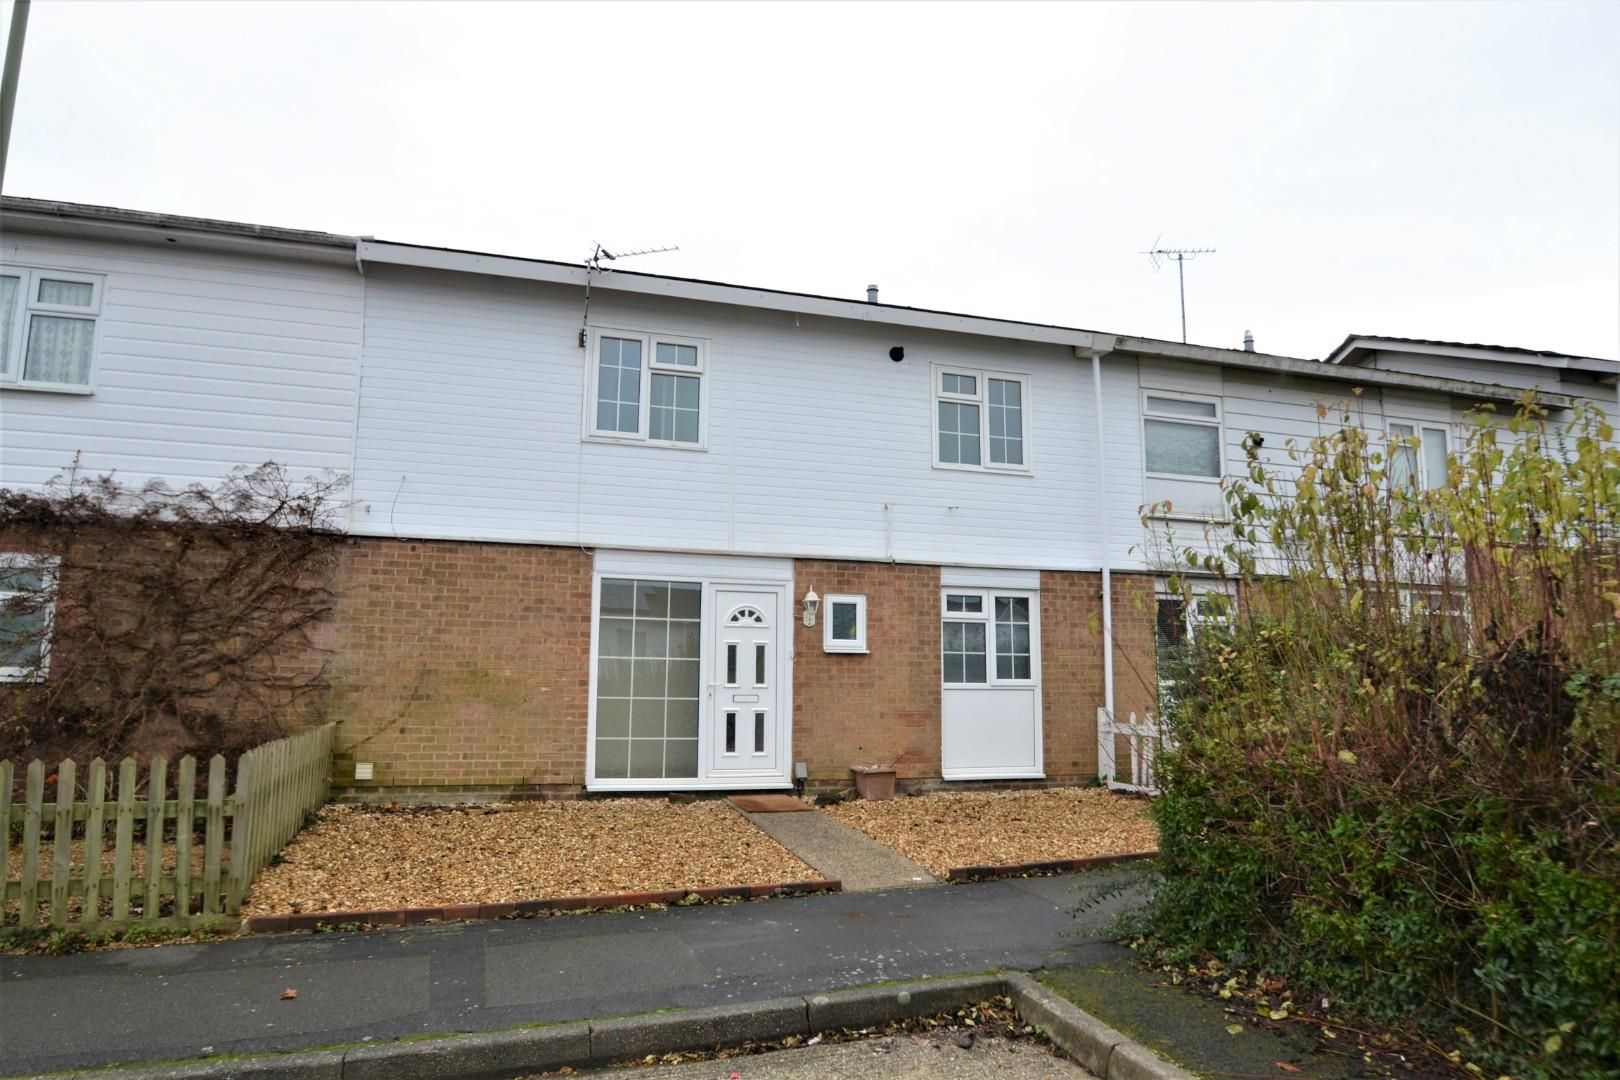 3 bed house for sale, RG24